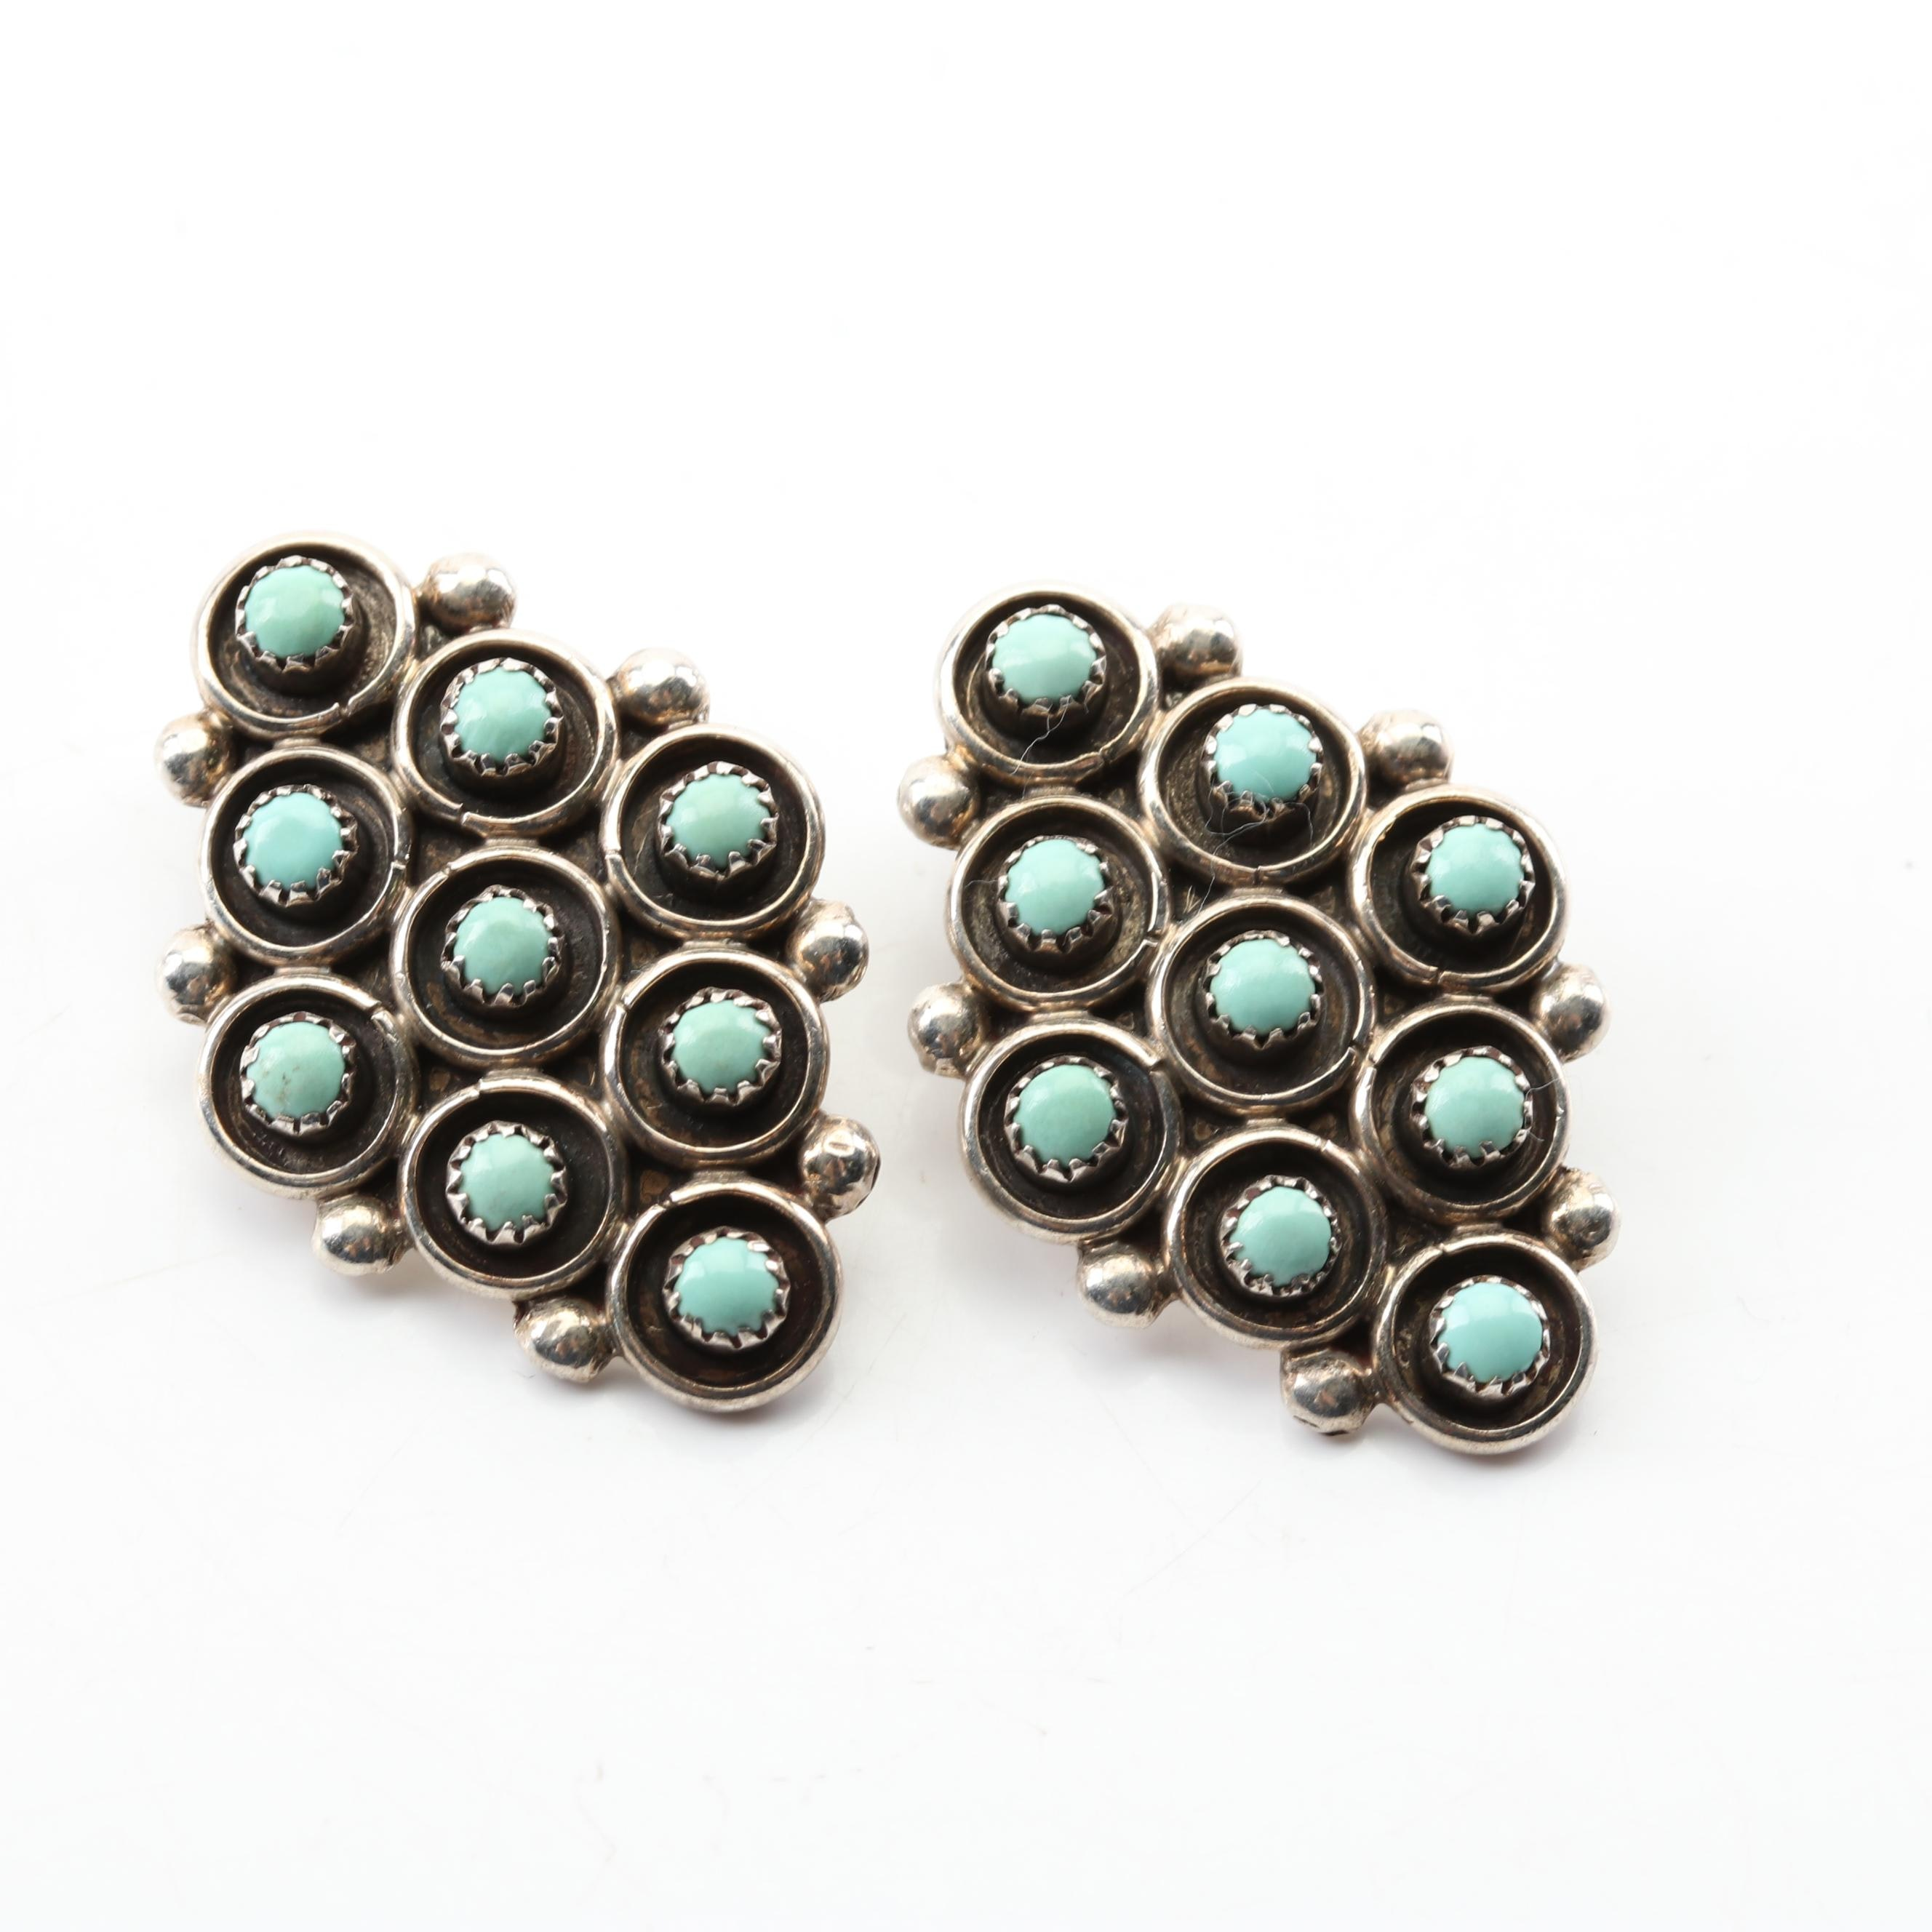 Vintage Sterling Silver Turquoise Clip-On Earrings